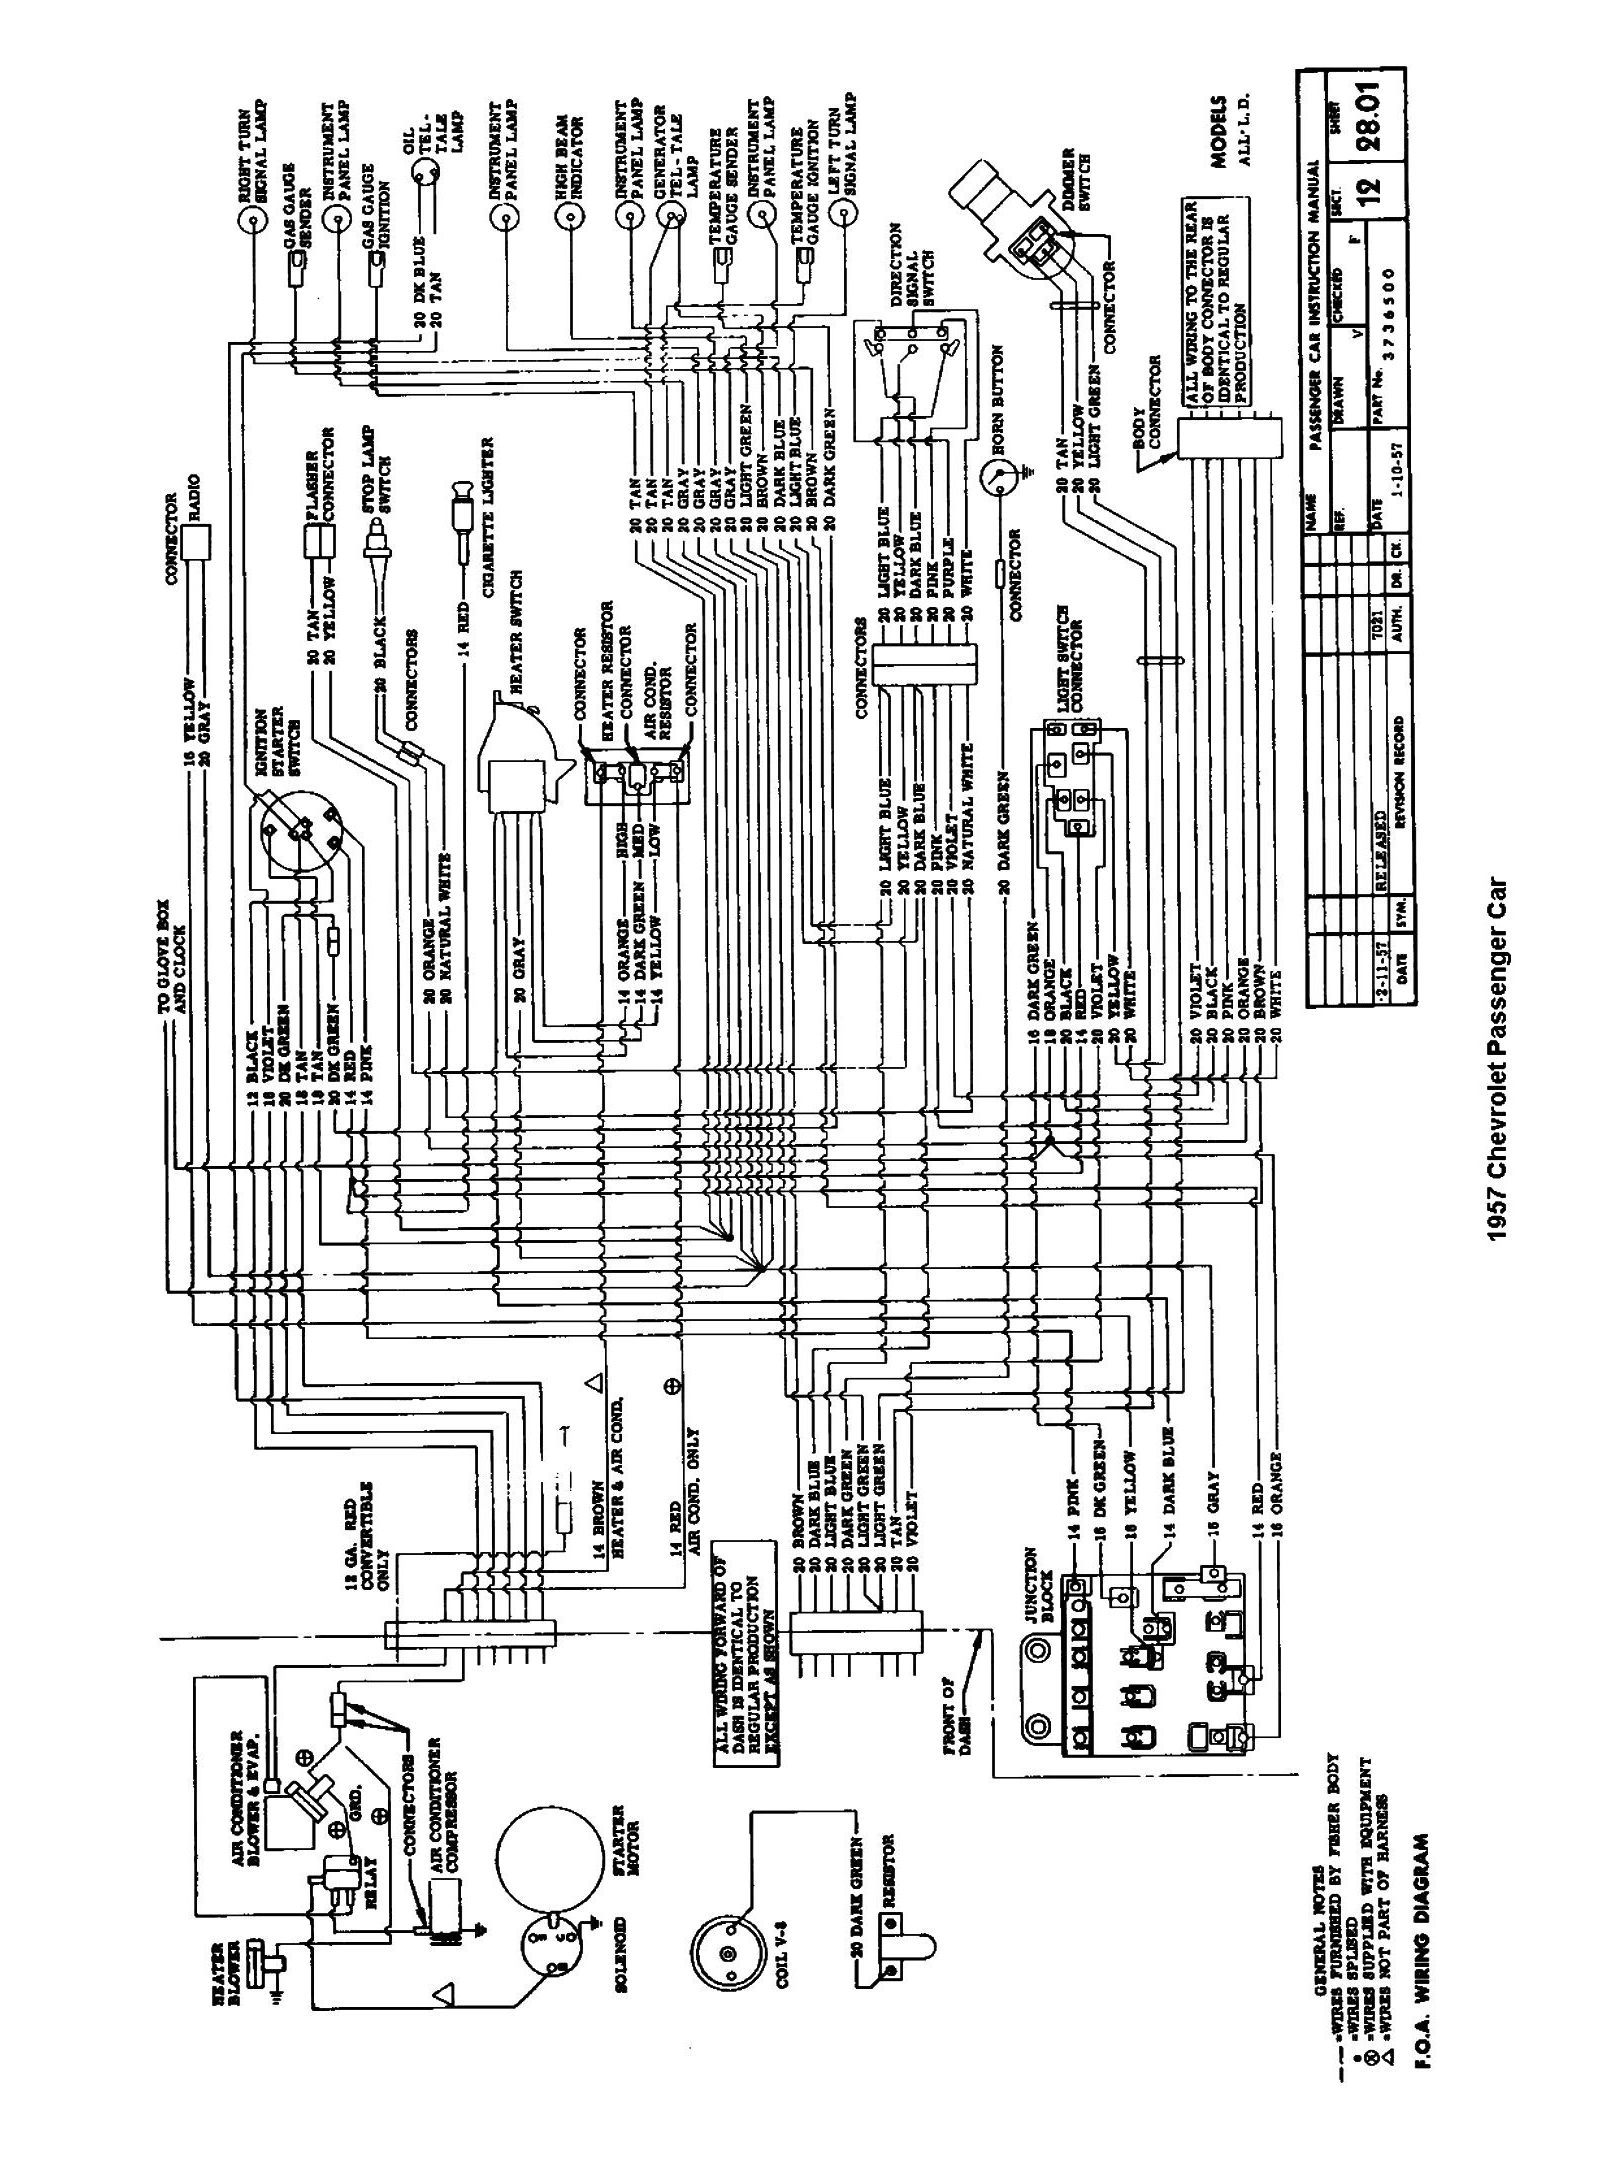 Chevy Wiring Diagrams Reading Automotive 1957 Passenger Car 2